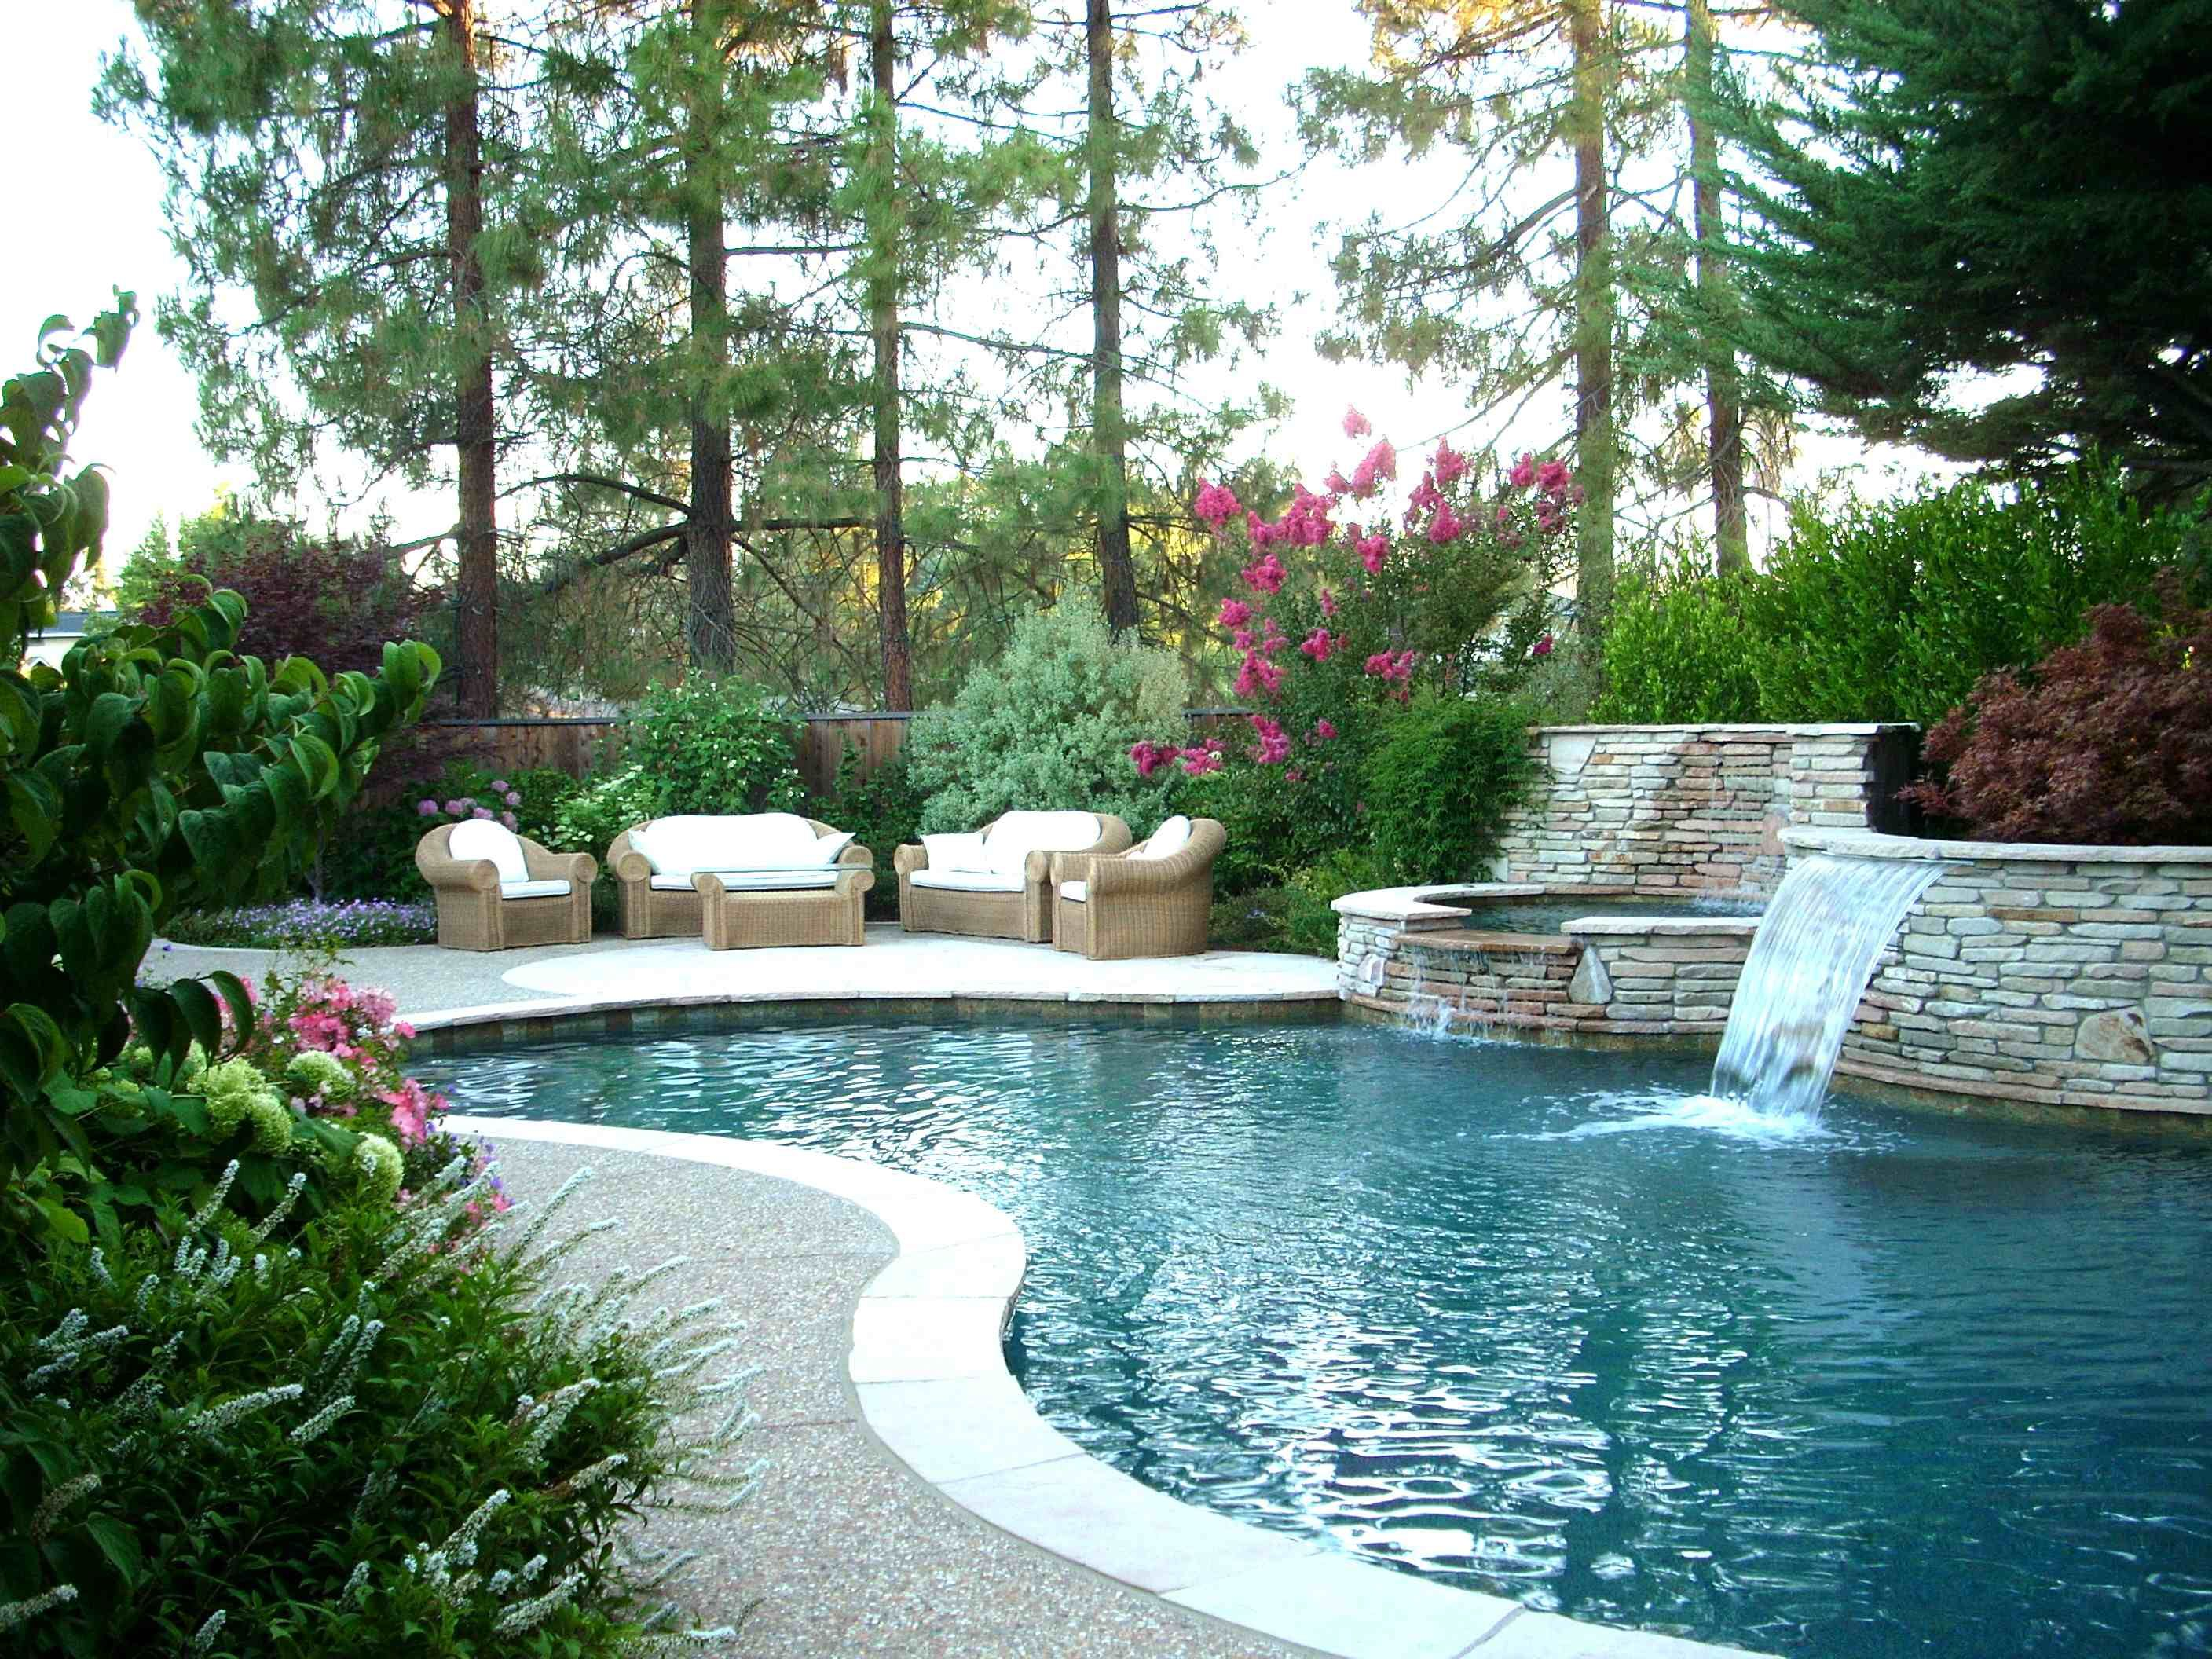 Landscaped pool pictures landscape design ideas for for Garden layout ideas